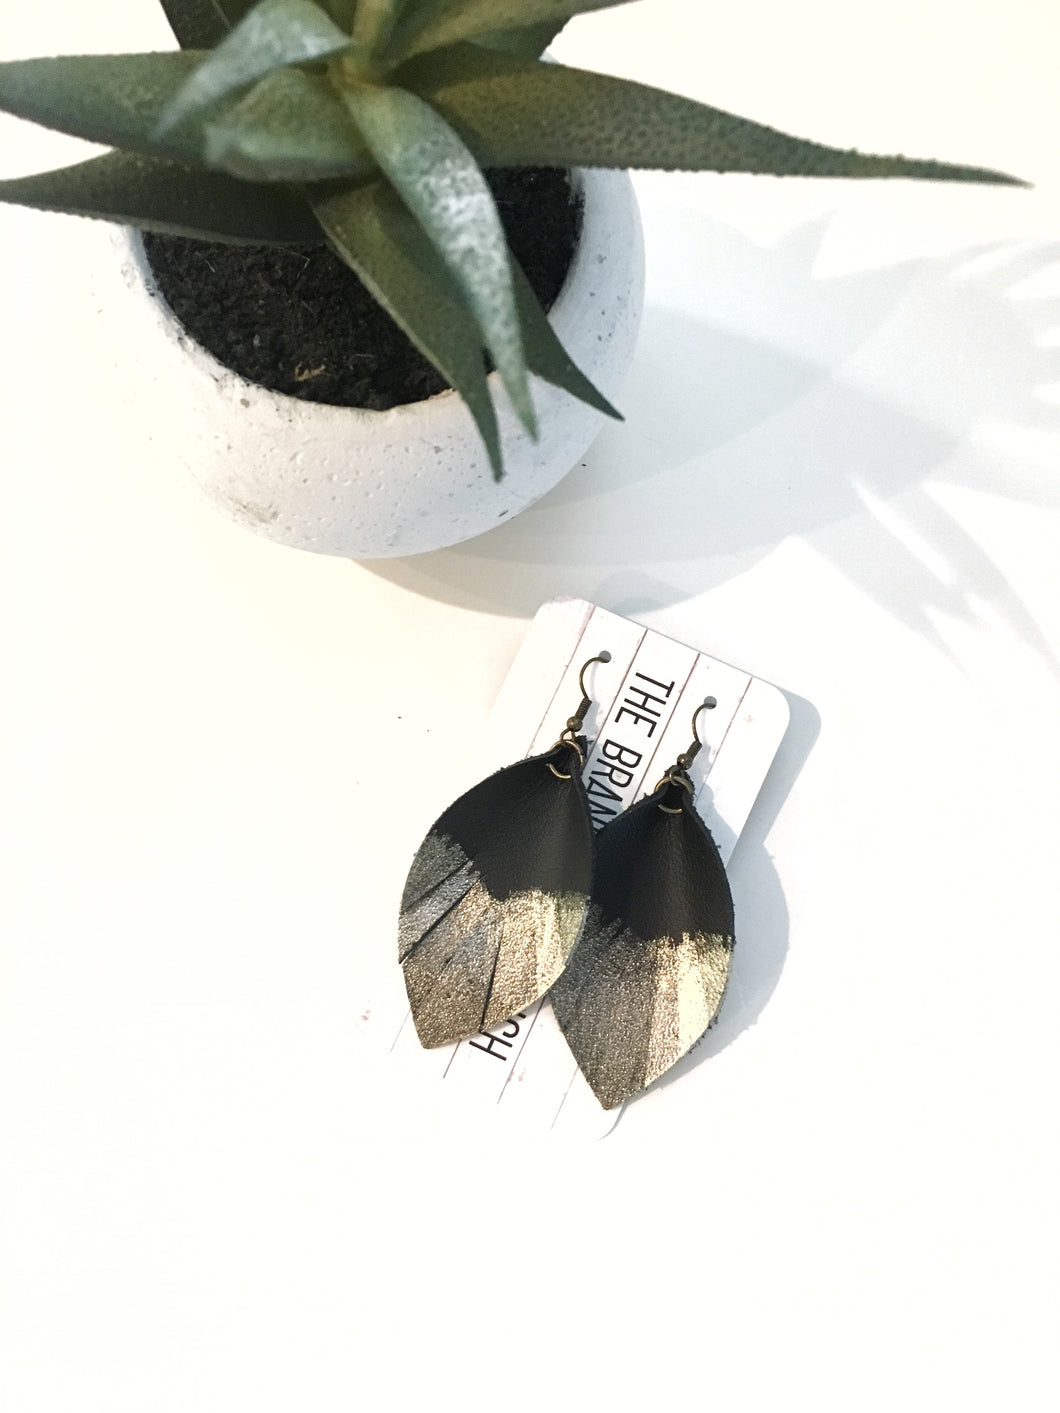 Feathered leather leaf earrings in Black with Gold + Silver accent - The Branded Branch